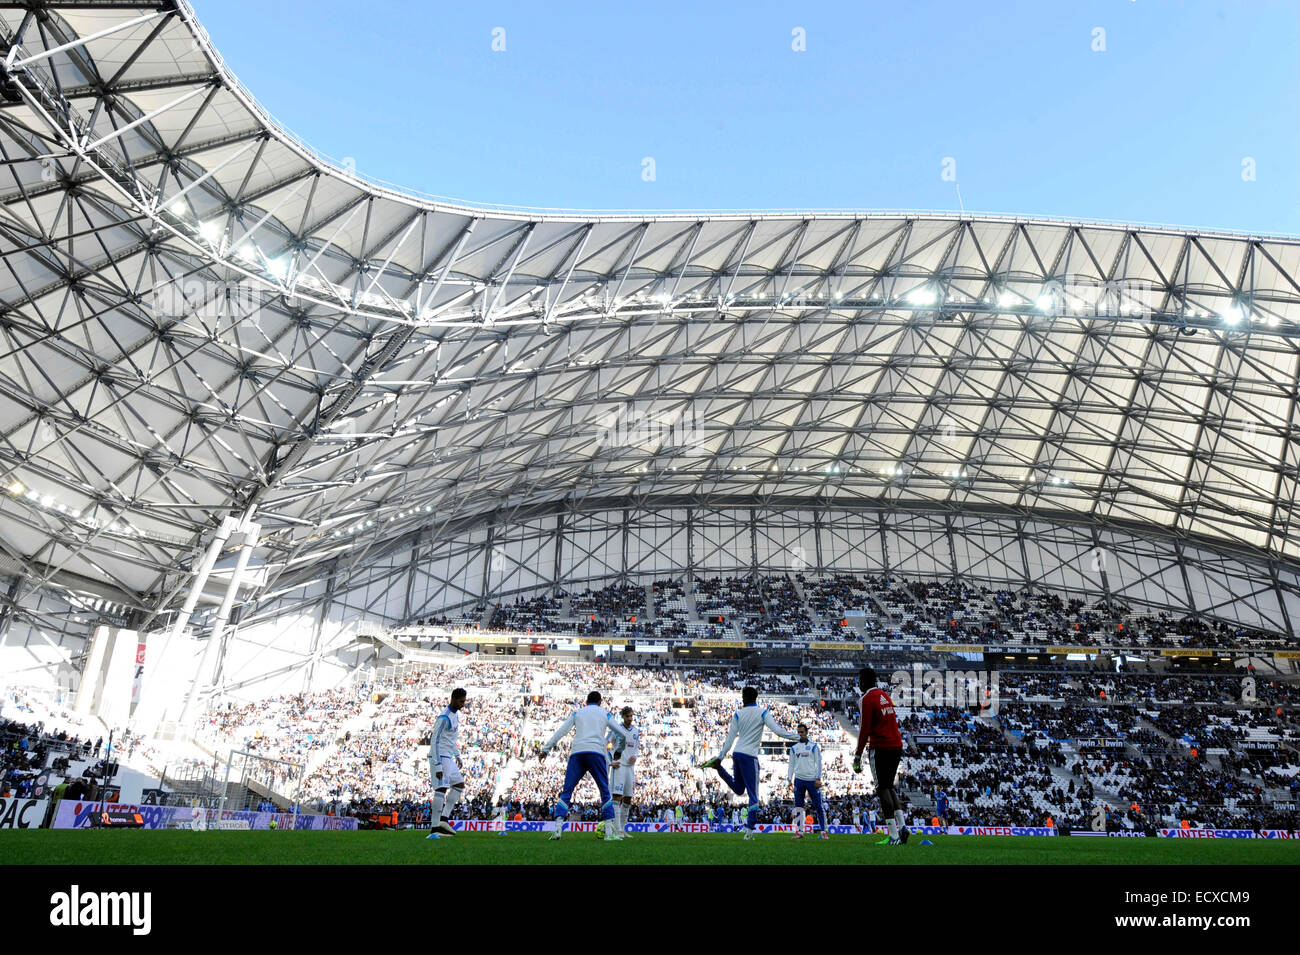 Marseille, France. 21st Dec, 2014. French League 1 football. Marseille versis Lille. The stadium at Marseille stade - Stock Image